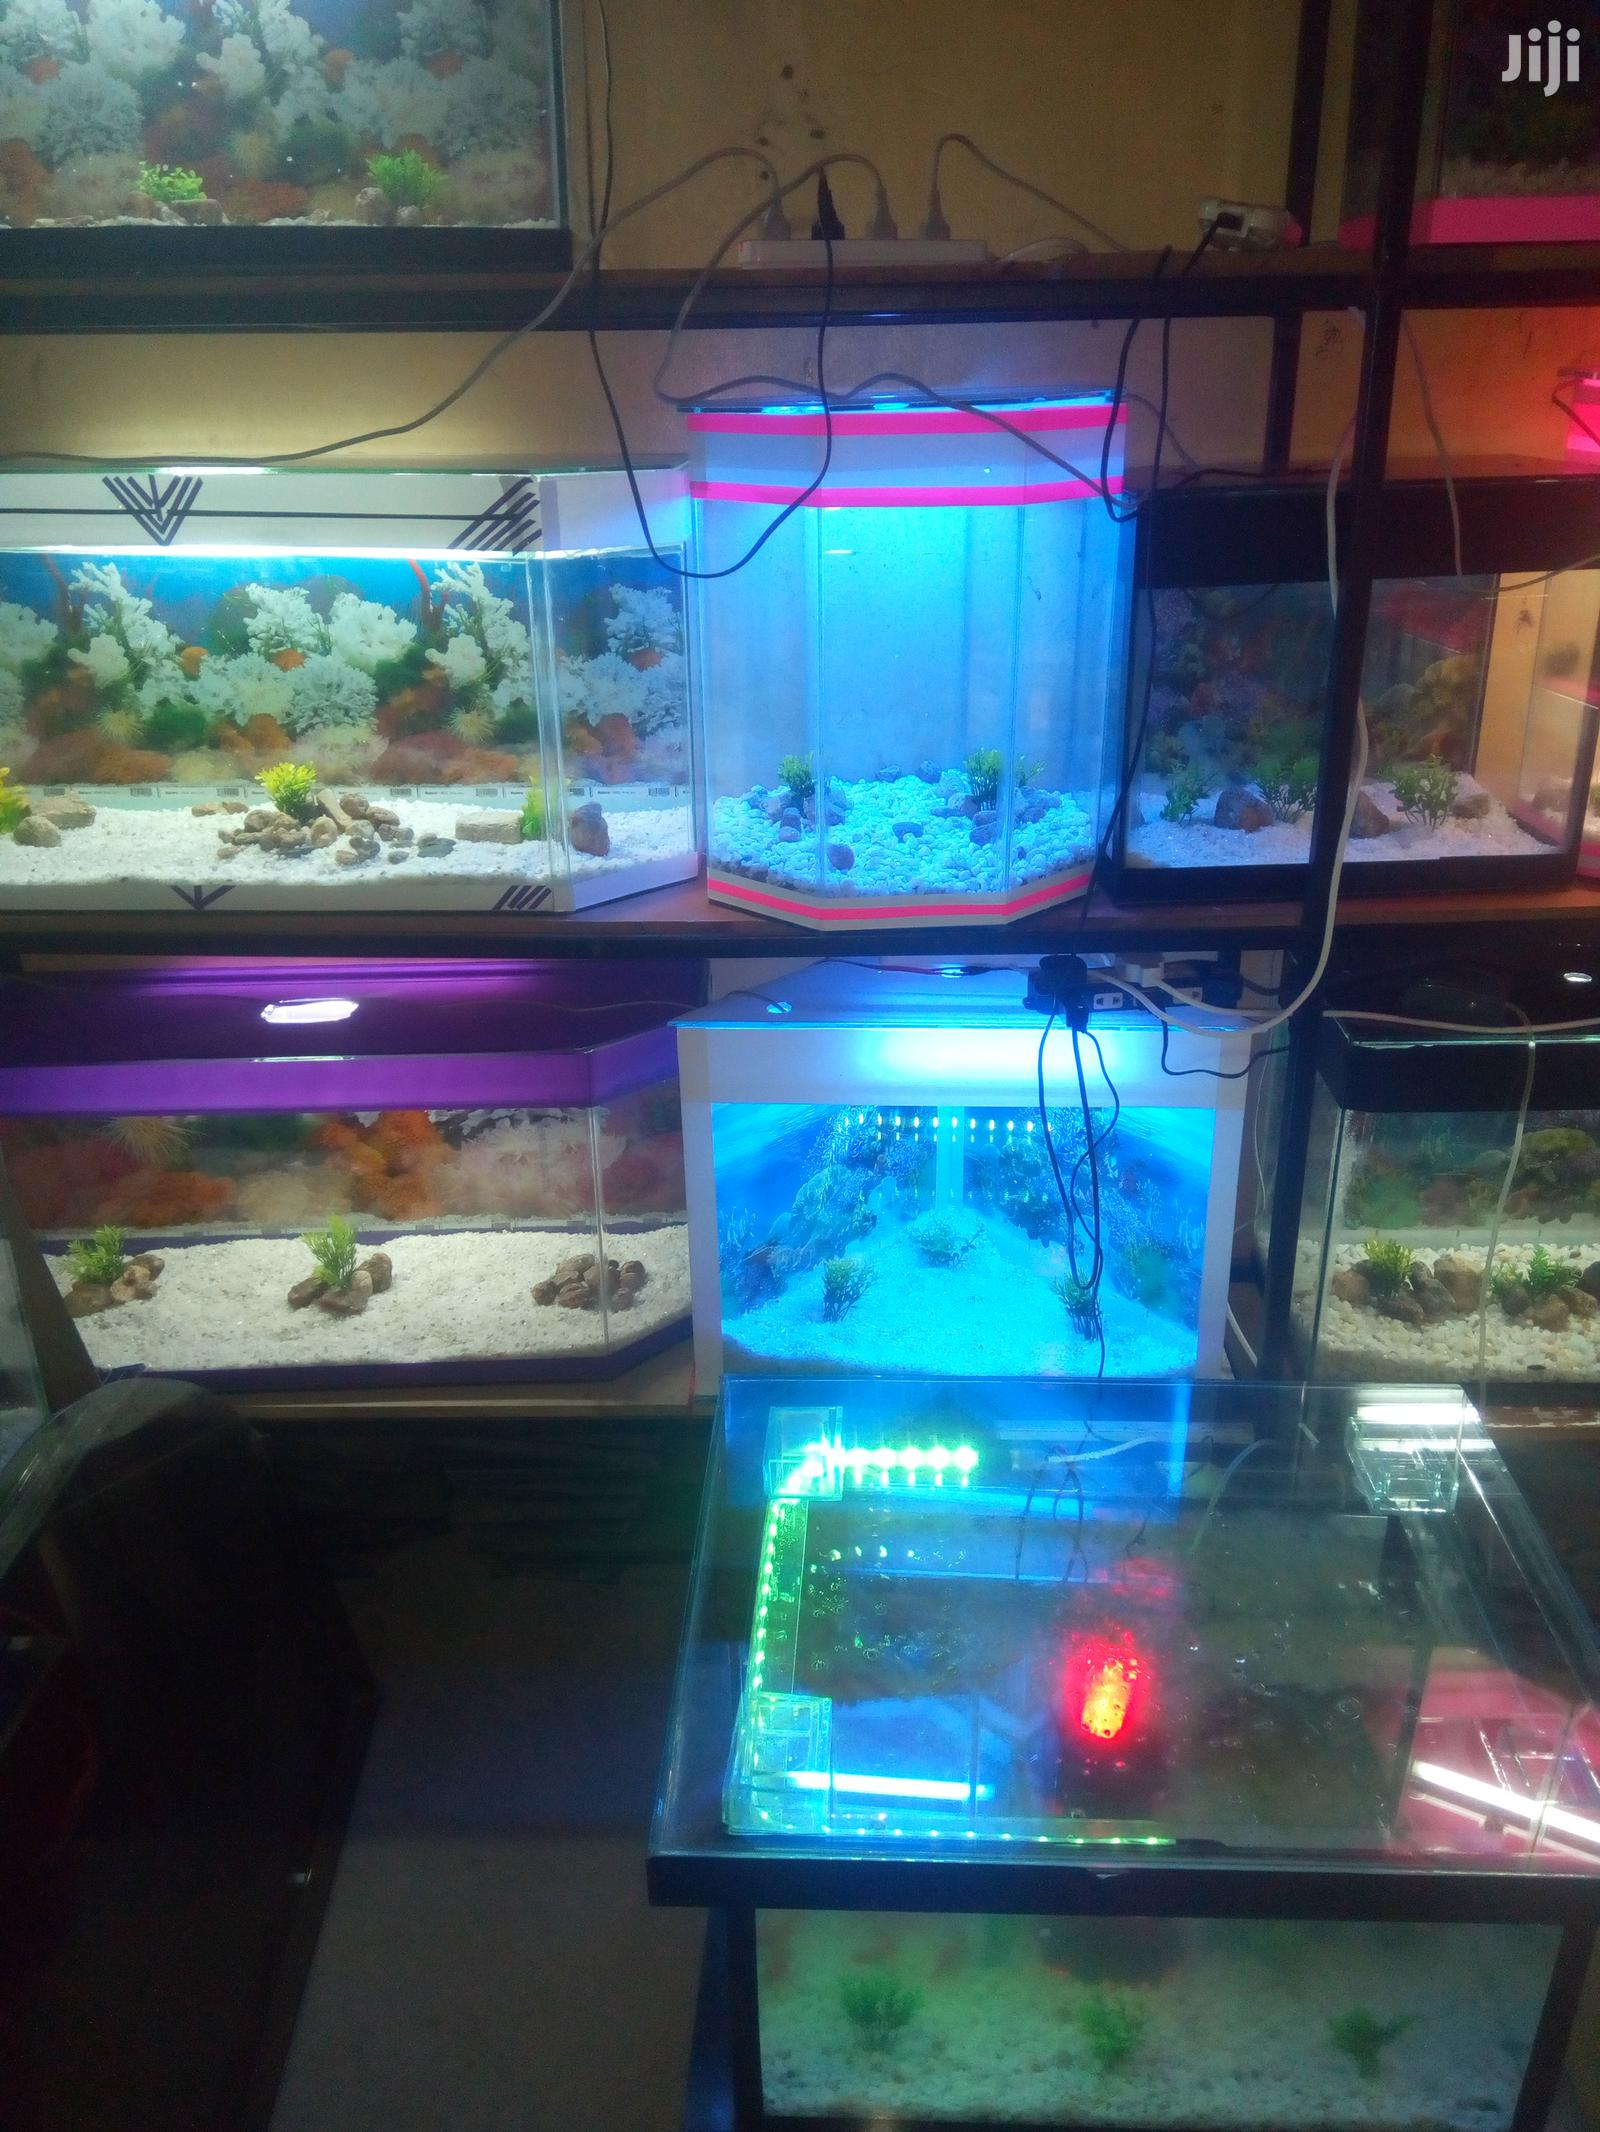 Coffee Table Aquarium | Fish for sale in Embakasi, Nairobi, Kenya